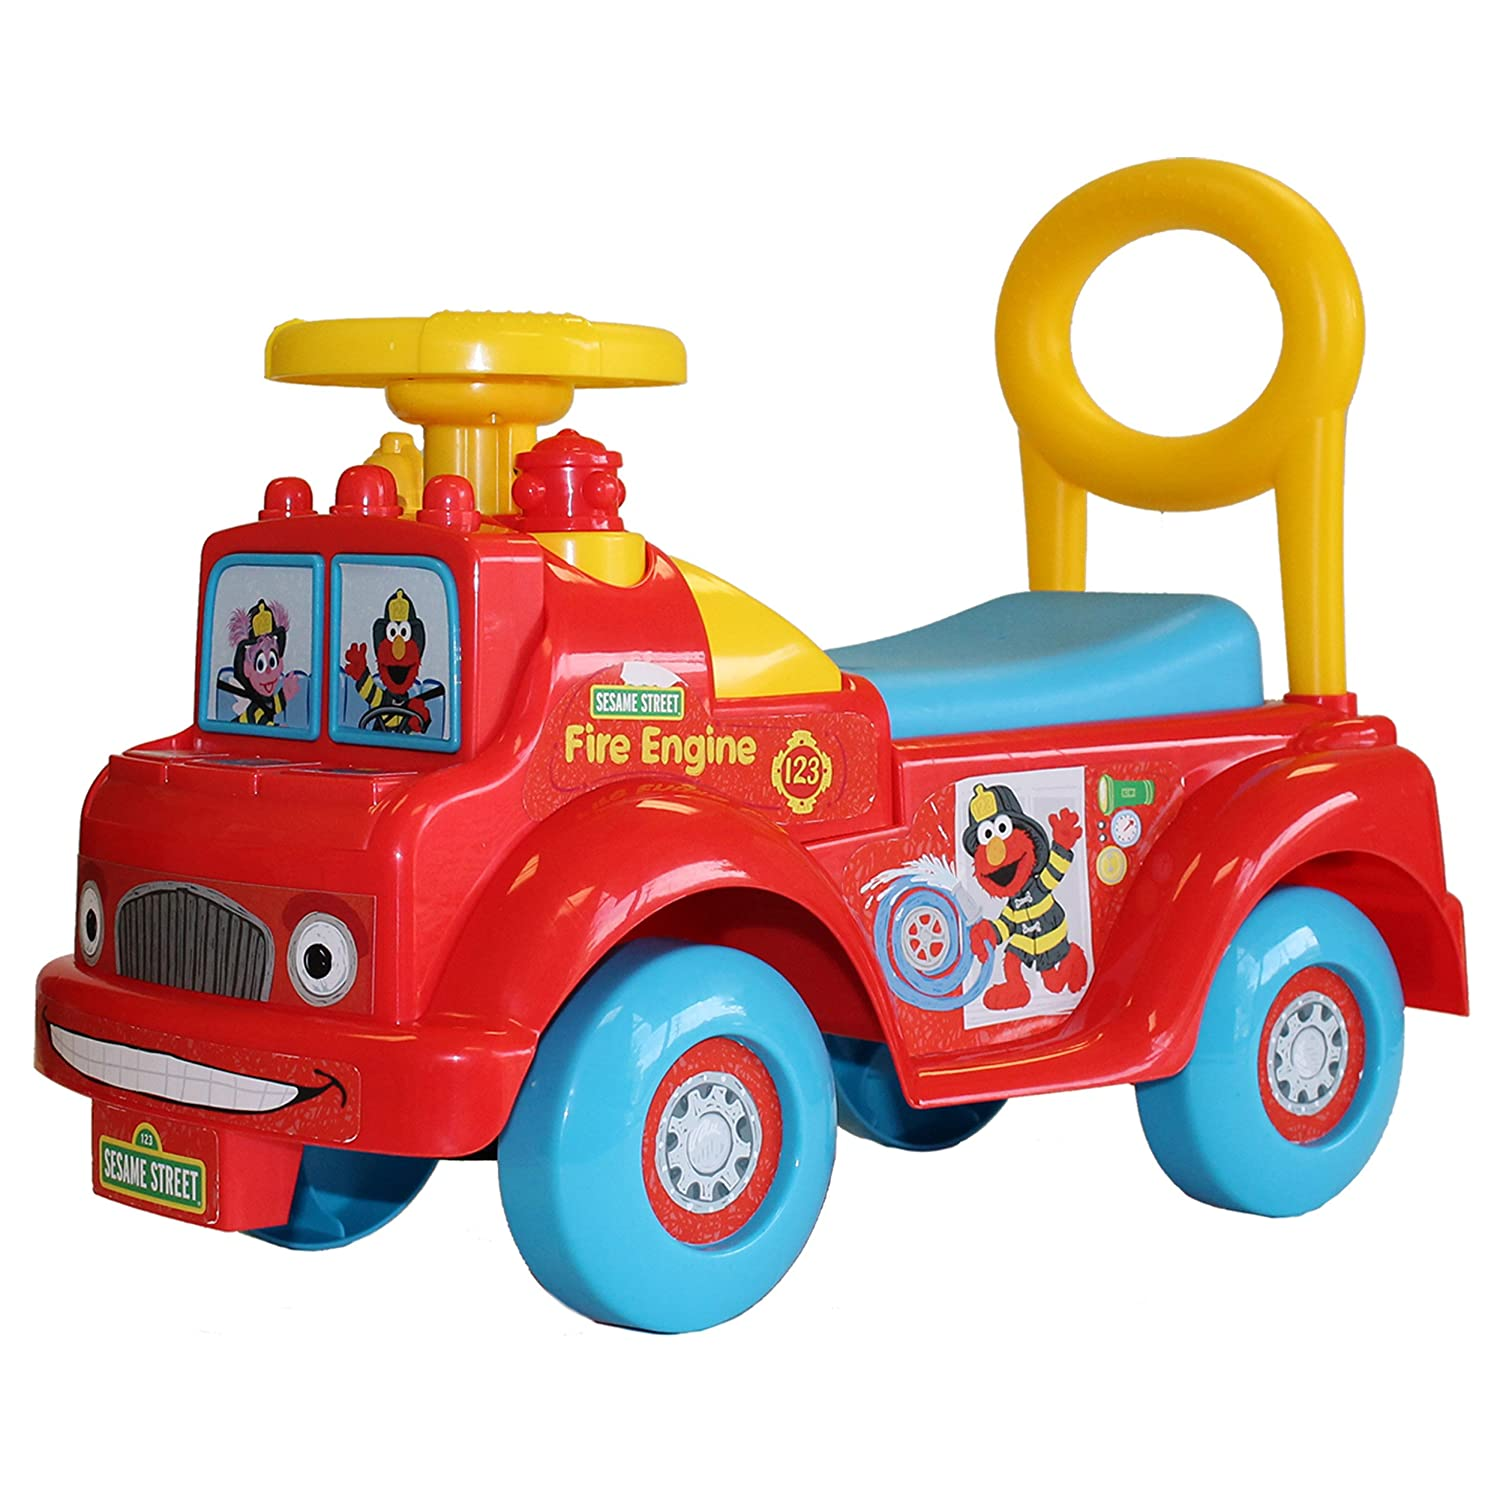 Cool Toys For Older Boys : Cool toys for year old boys birthday christmas